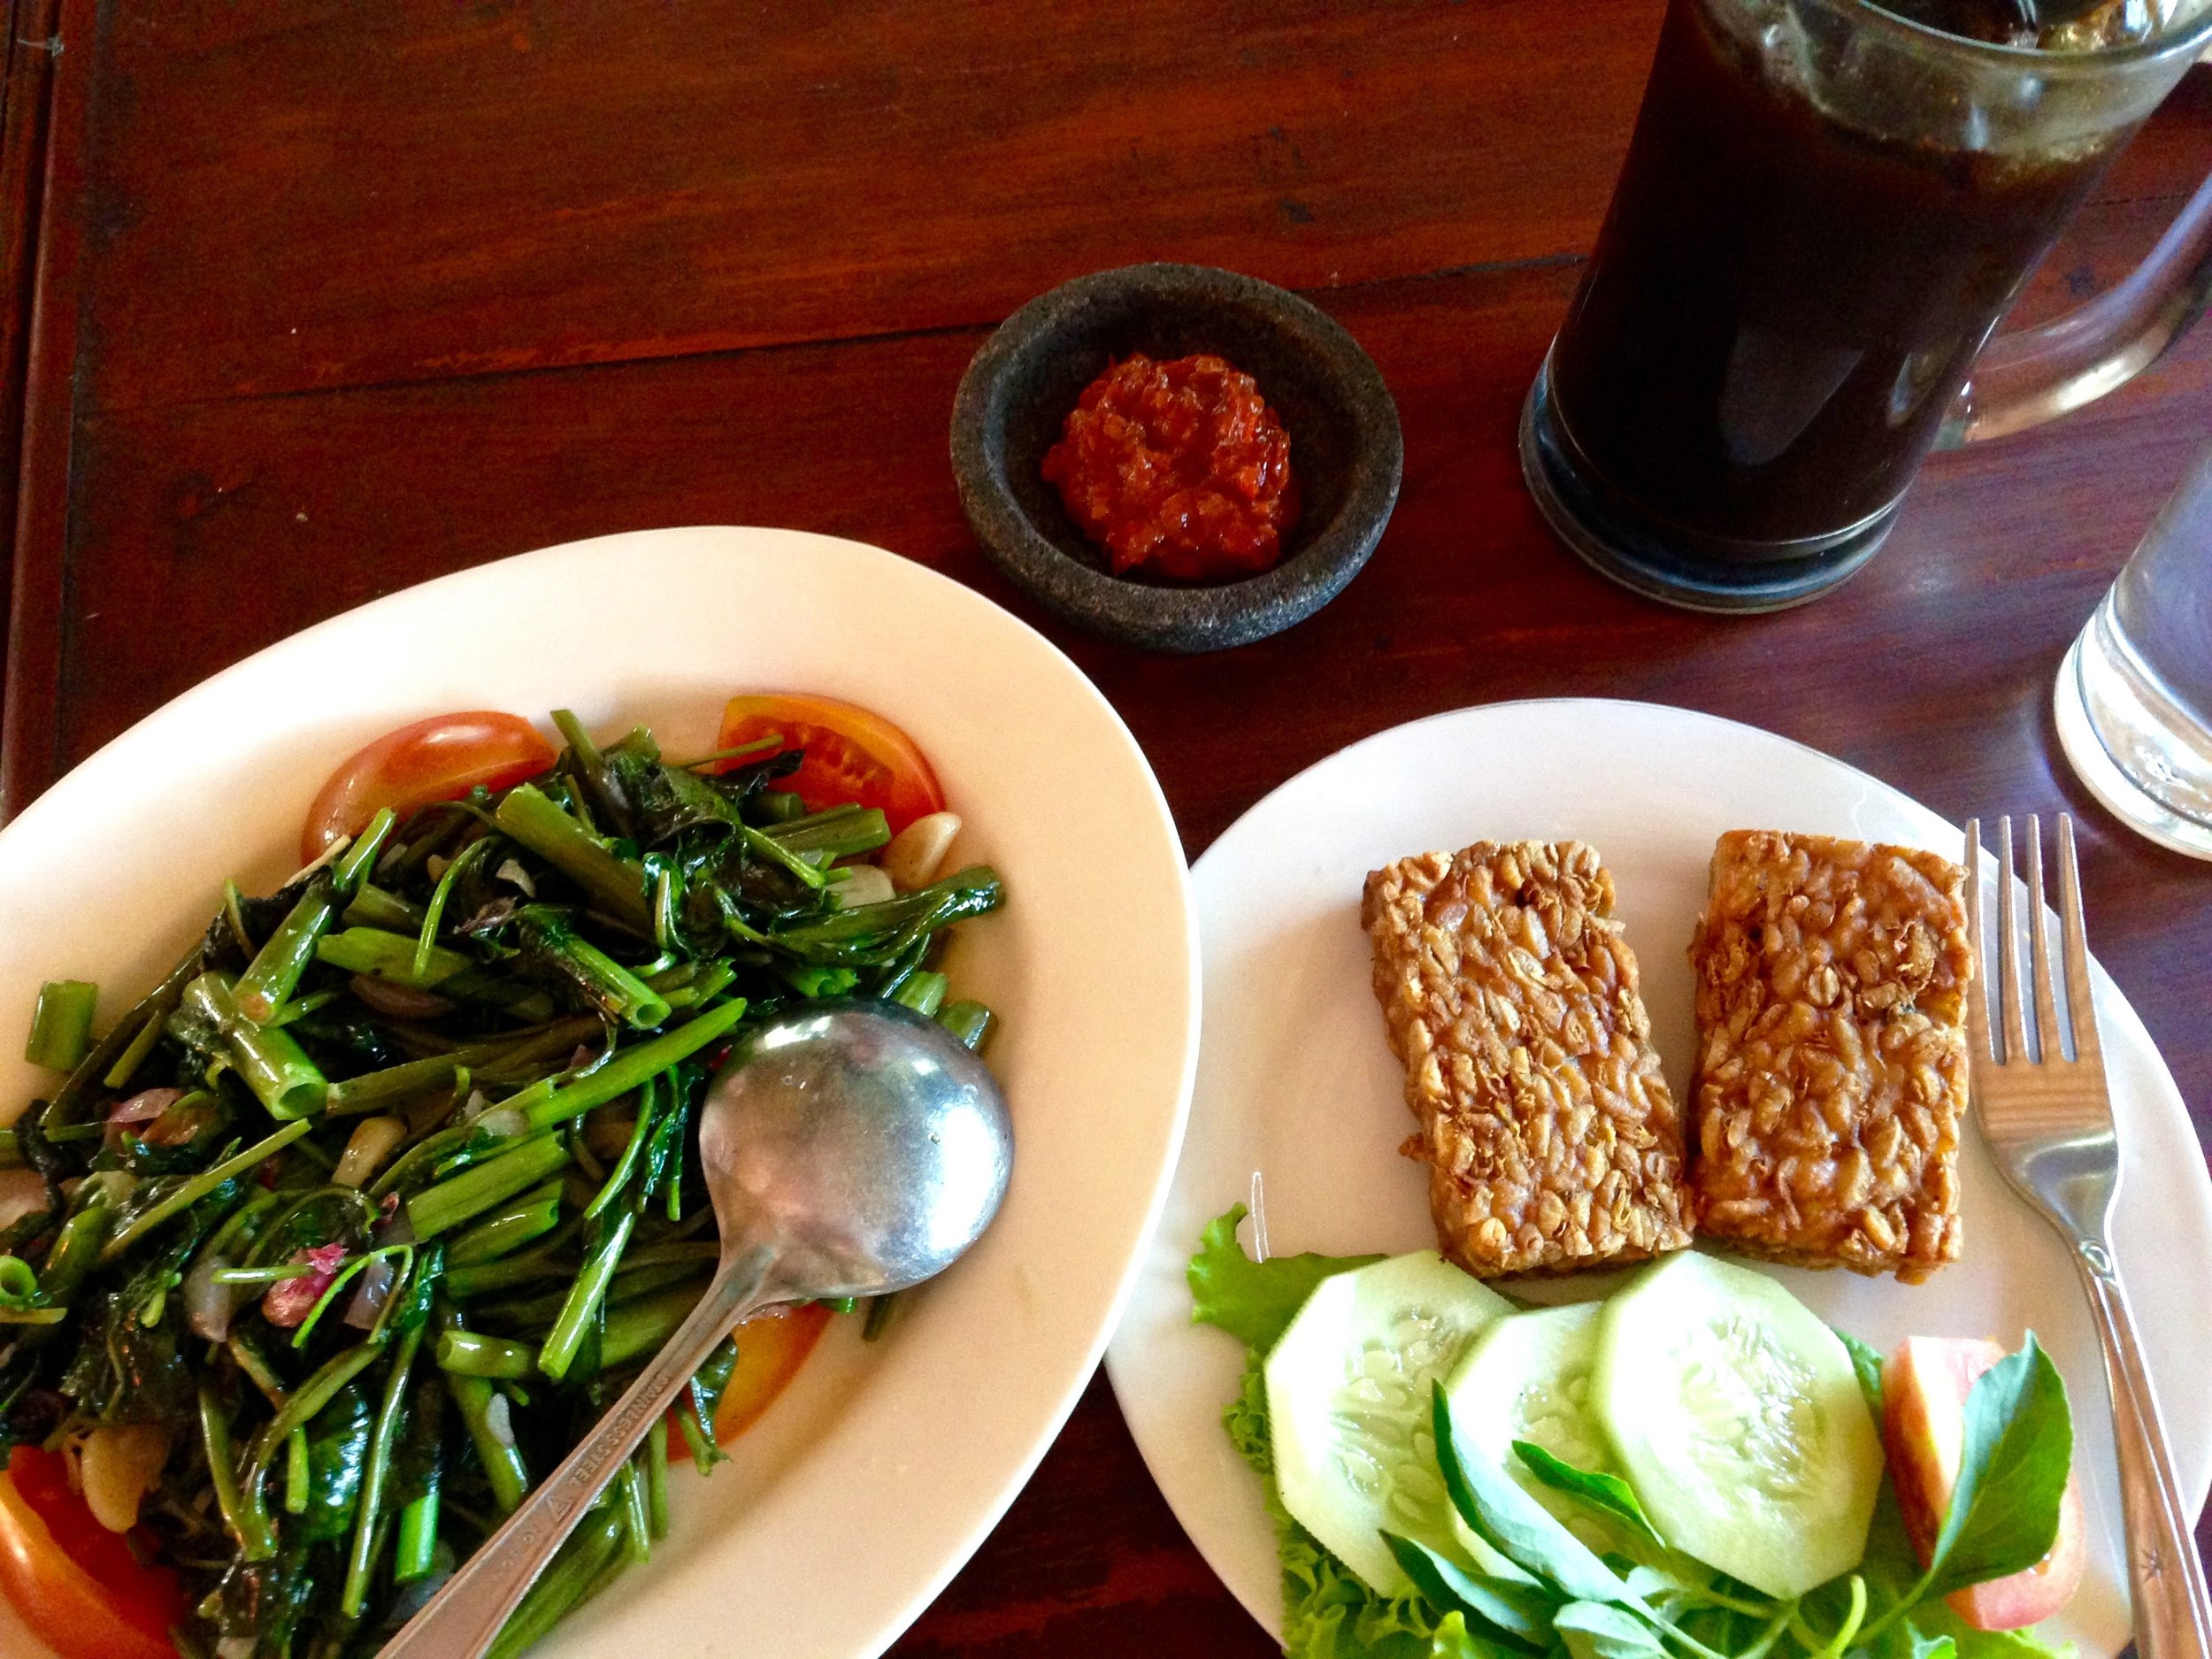 Garlicky water spinach with fried tempeh for lunch, one of my favourite meals of the trip.